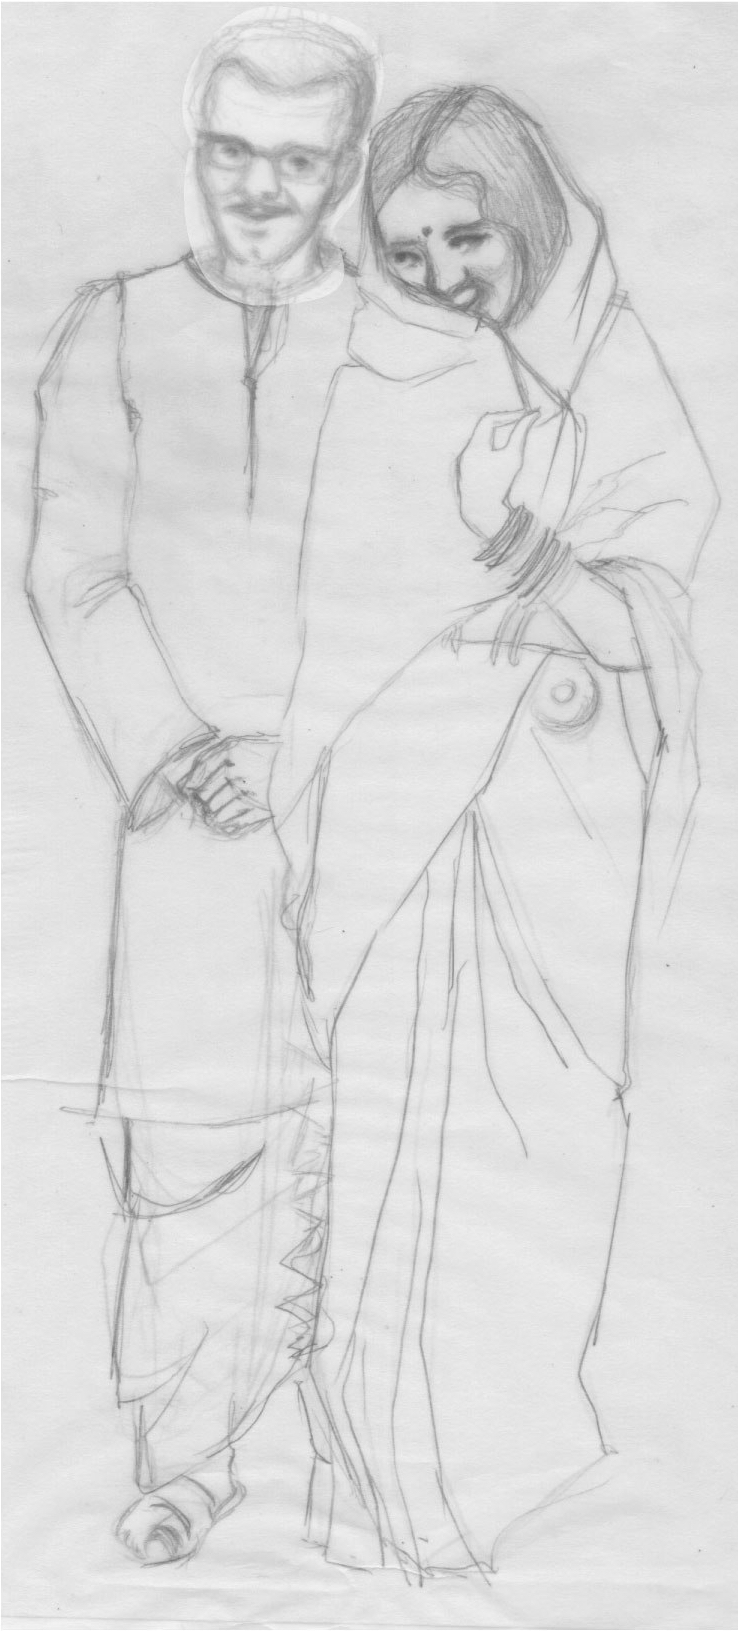 Aditi Raychoudhury. My newly married parents. It was the start of something beautiful. 2017. Pencil on Tracing Paper.